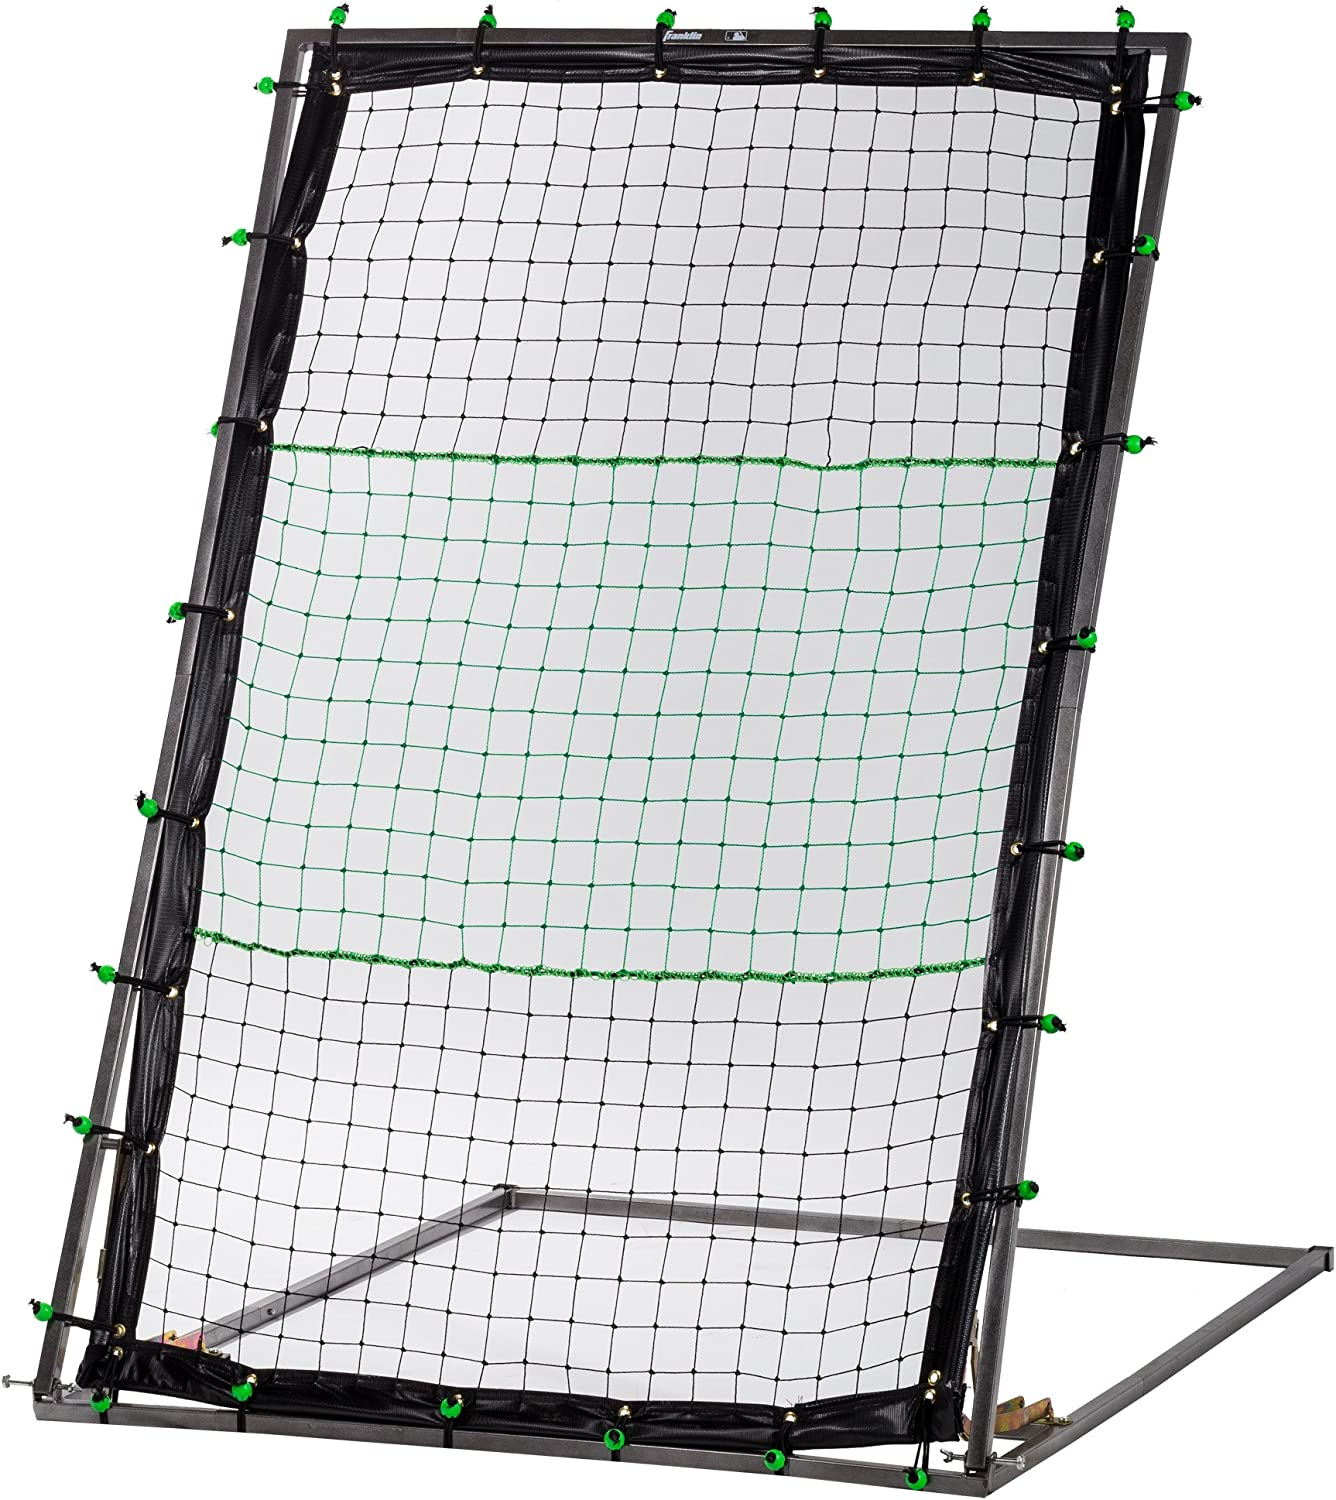 Franklin Sports MLB Pitch Back – Baseball or Softball Pitch Return – 60 Inch Adjustable Net for Ball Return at All Angles – Baseball and Softball Training Net for Adults and Kids Folds for Storage